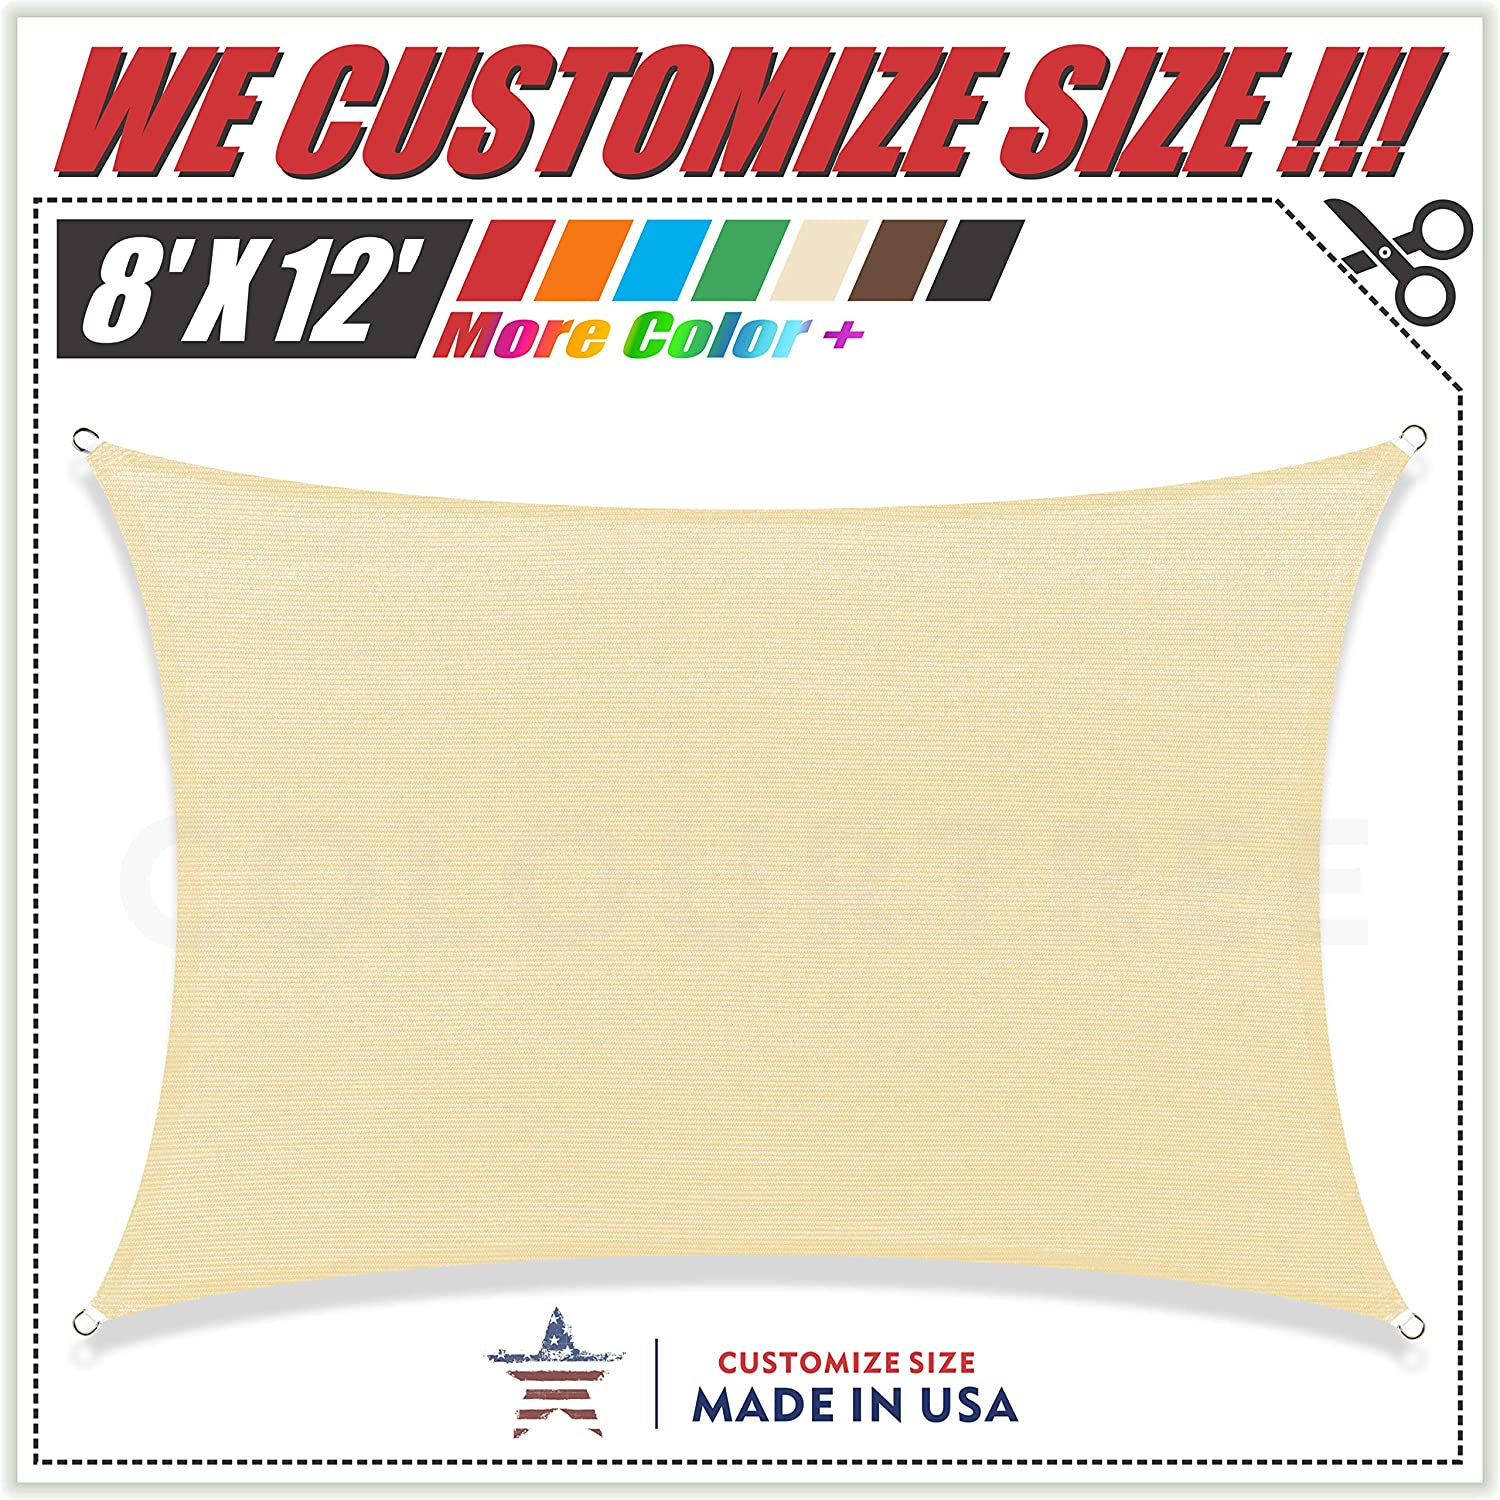 ColourTree 8 x 12 Beige Sun Shade Sail Rectangle Canopy Awning, Heavy Duty Commercial Grade ,We Make Custom Size